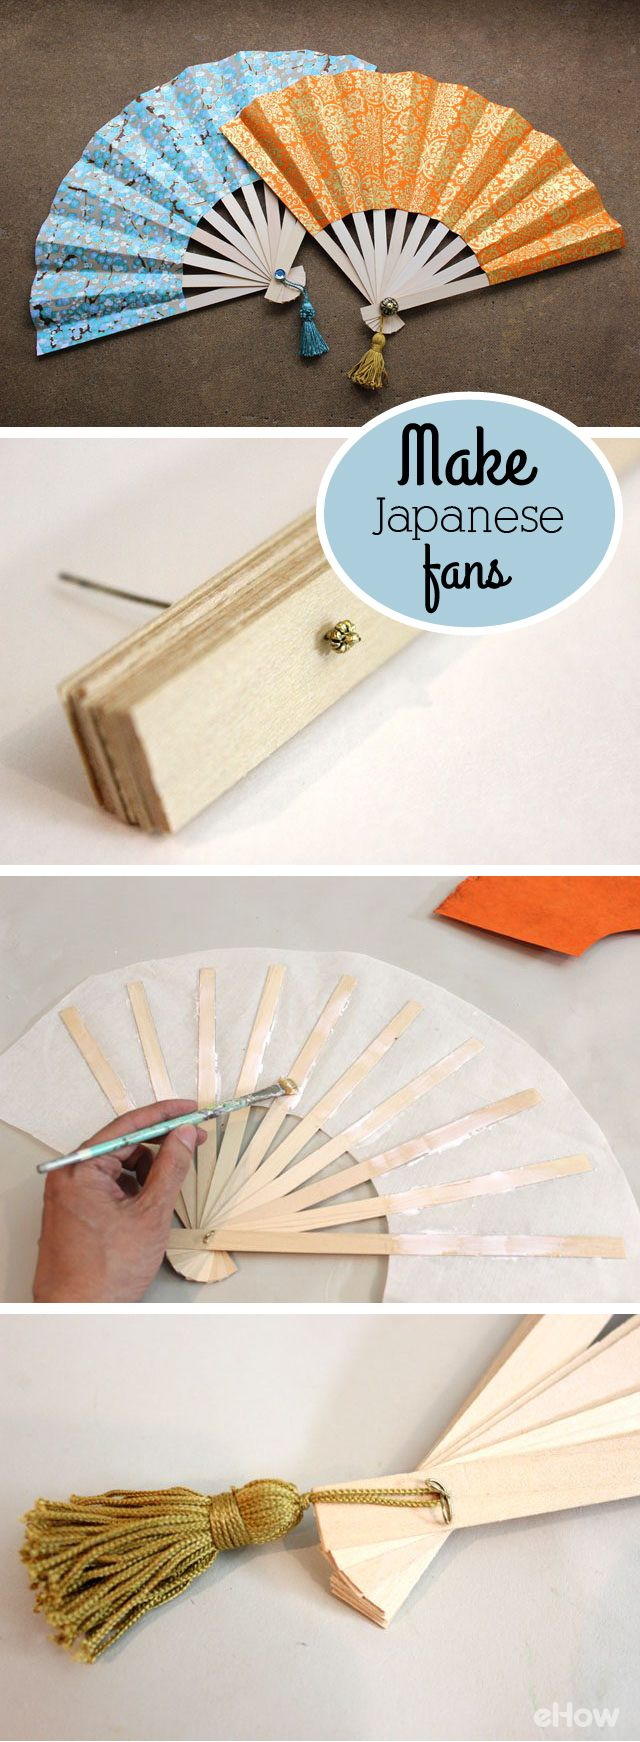 How to Make Japanese Fans | DIY Fabric Crafts | Crafts, Diy